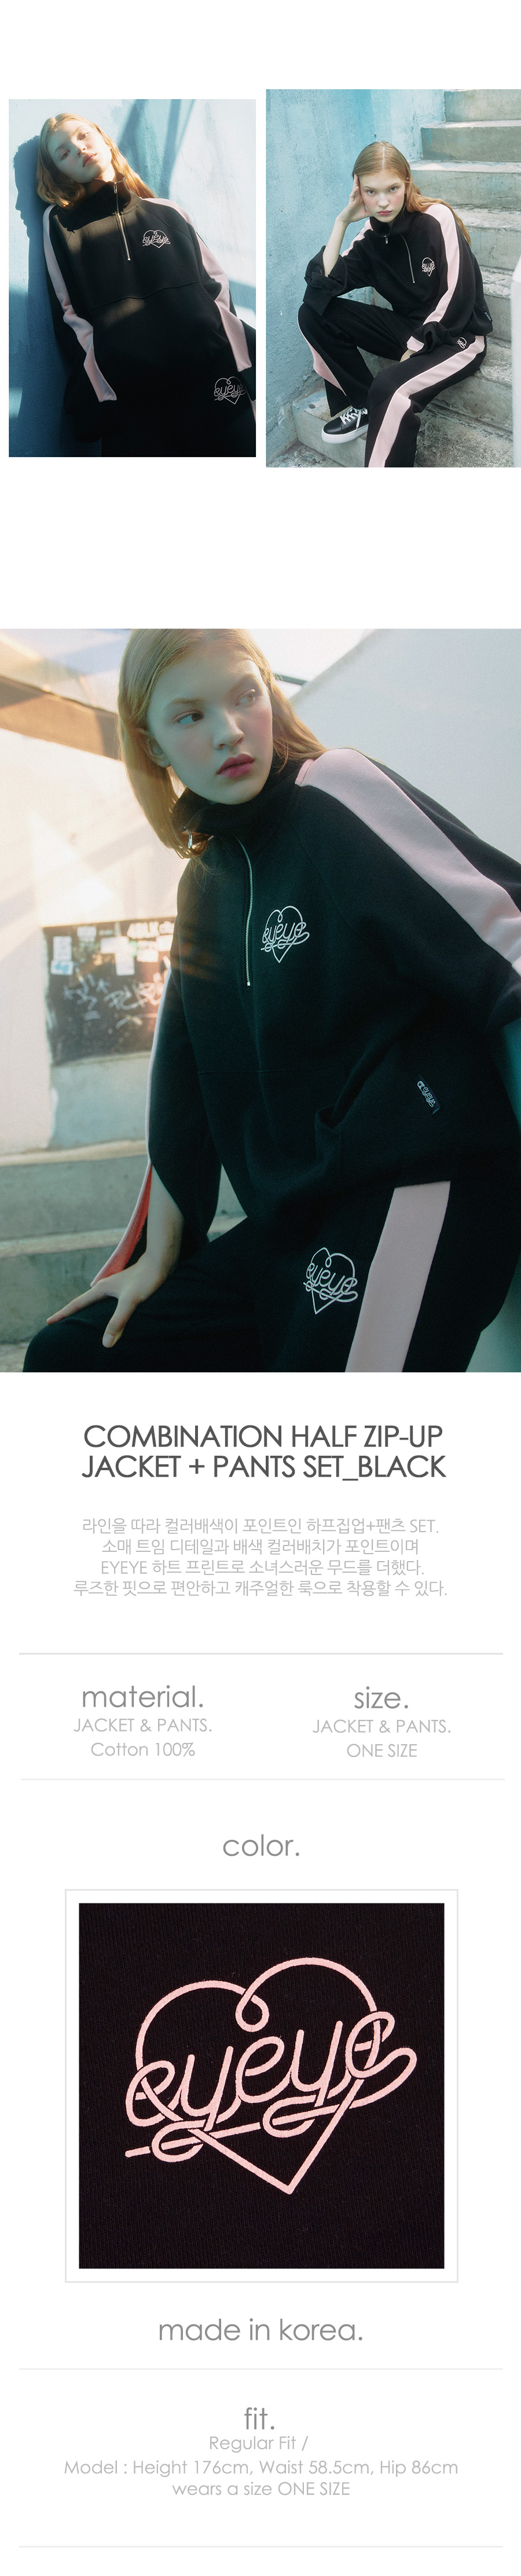 아이아이(EYEYE) [SET] COLOR COMBINATION HALF ZIP-UP+PANTS SET_BALCK (EEON1RLR01W/EEON1FPR02W)